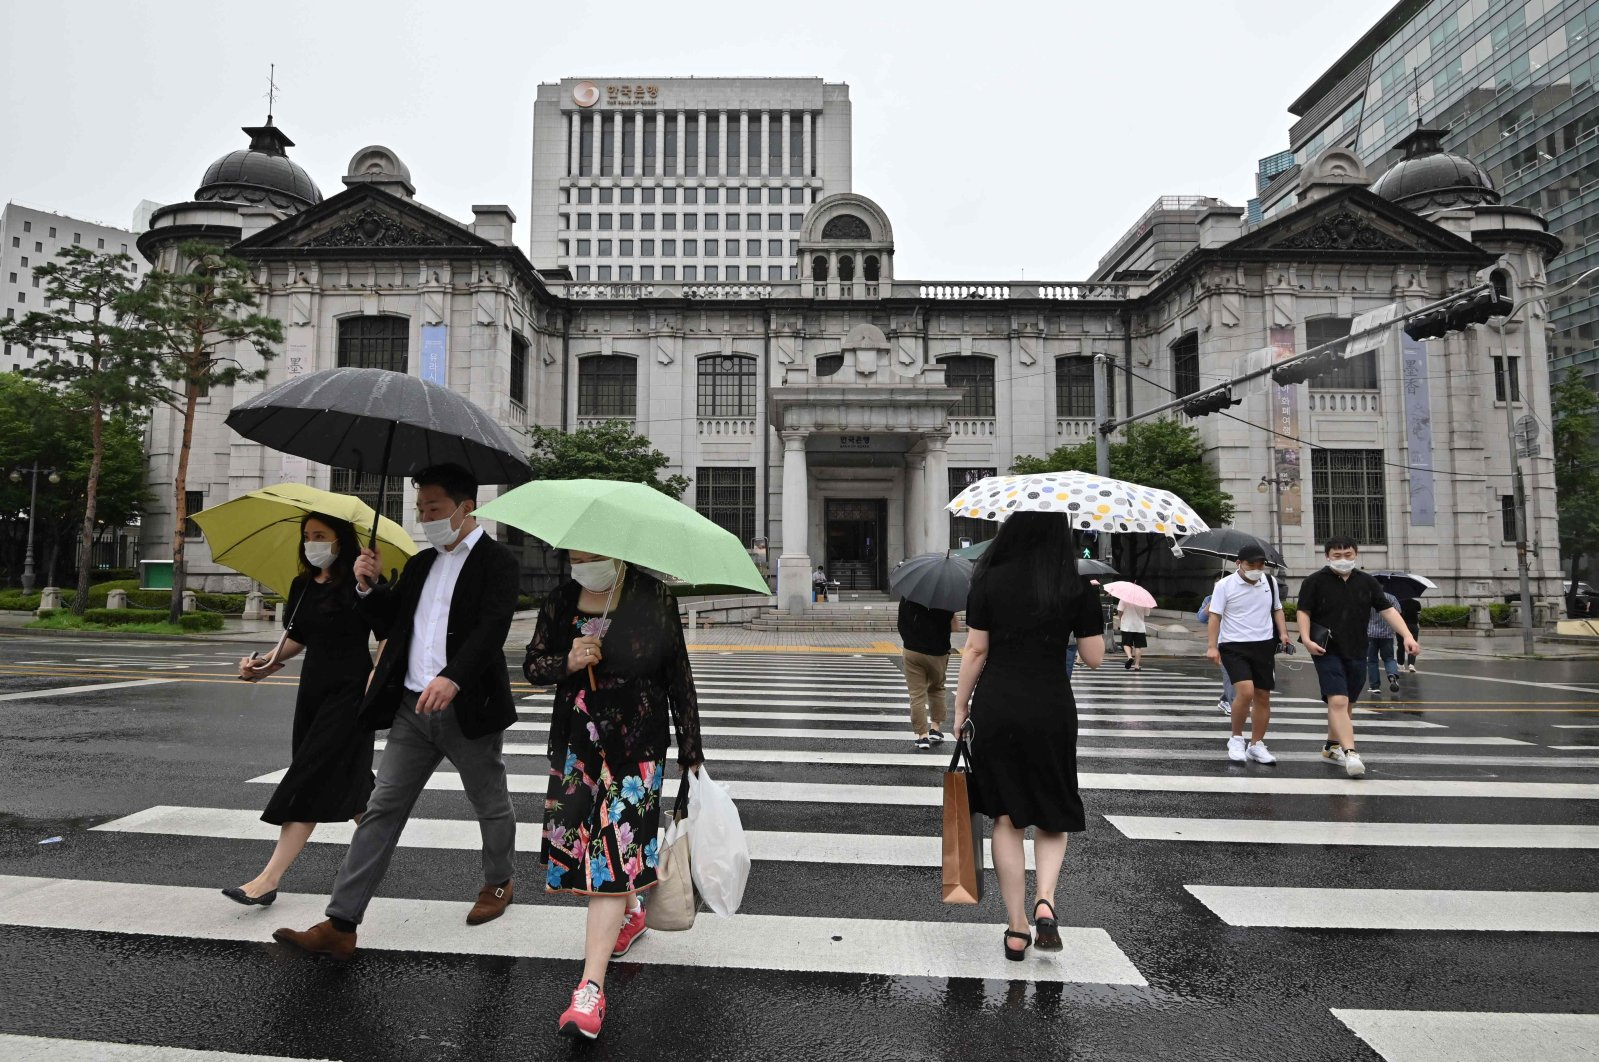 Pedestrians cross the road in front of the Bank of Korea in Seoul, South Korea, July 23, 2020. (AFP Photo)